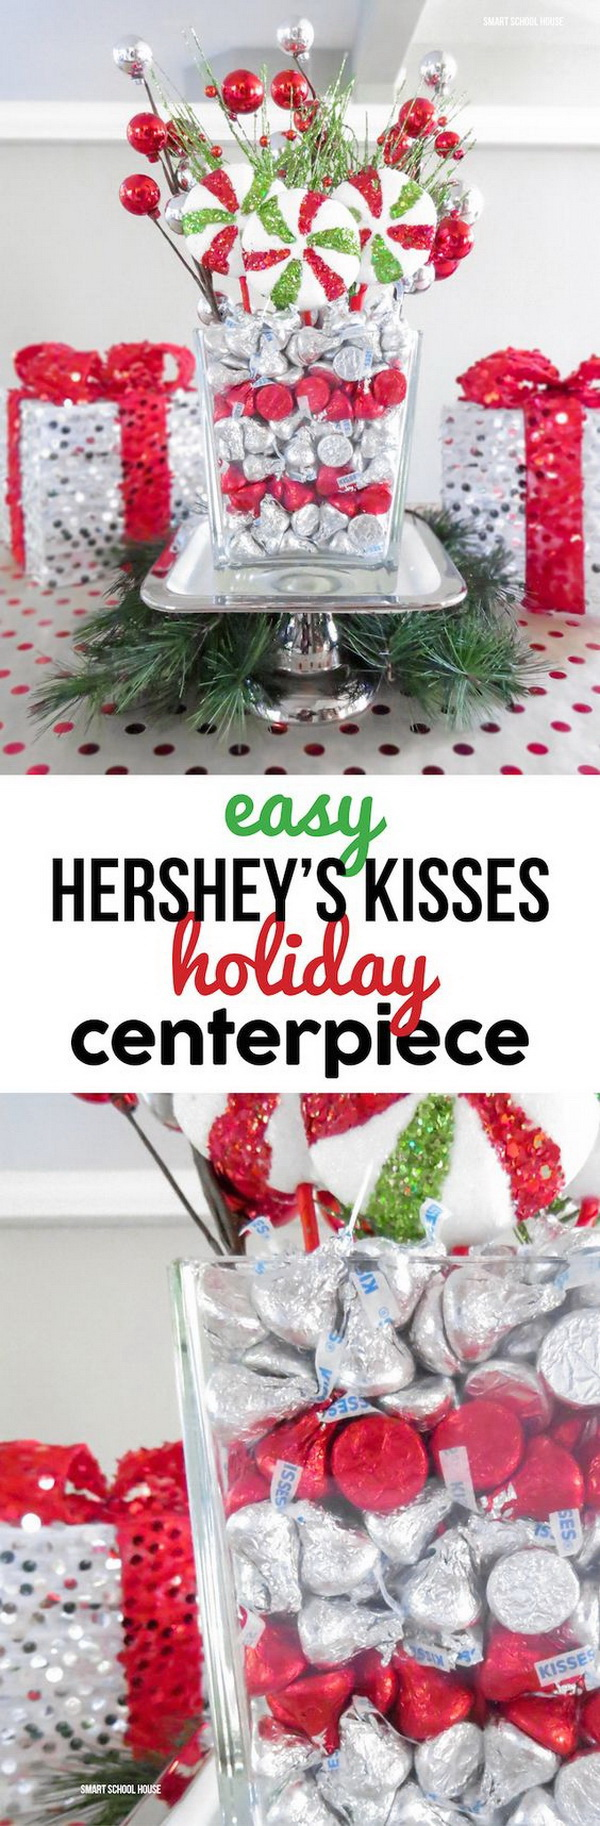 Homemade Projects & Ideas for Christmas Decoration: DIY Festive Holiday Centerpiece Filled With Chocolate Kisses.